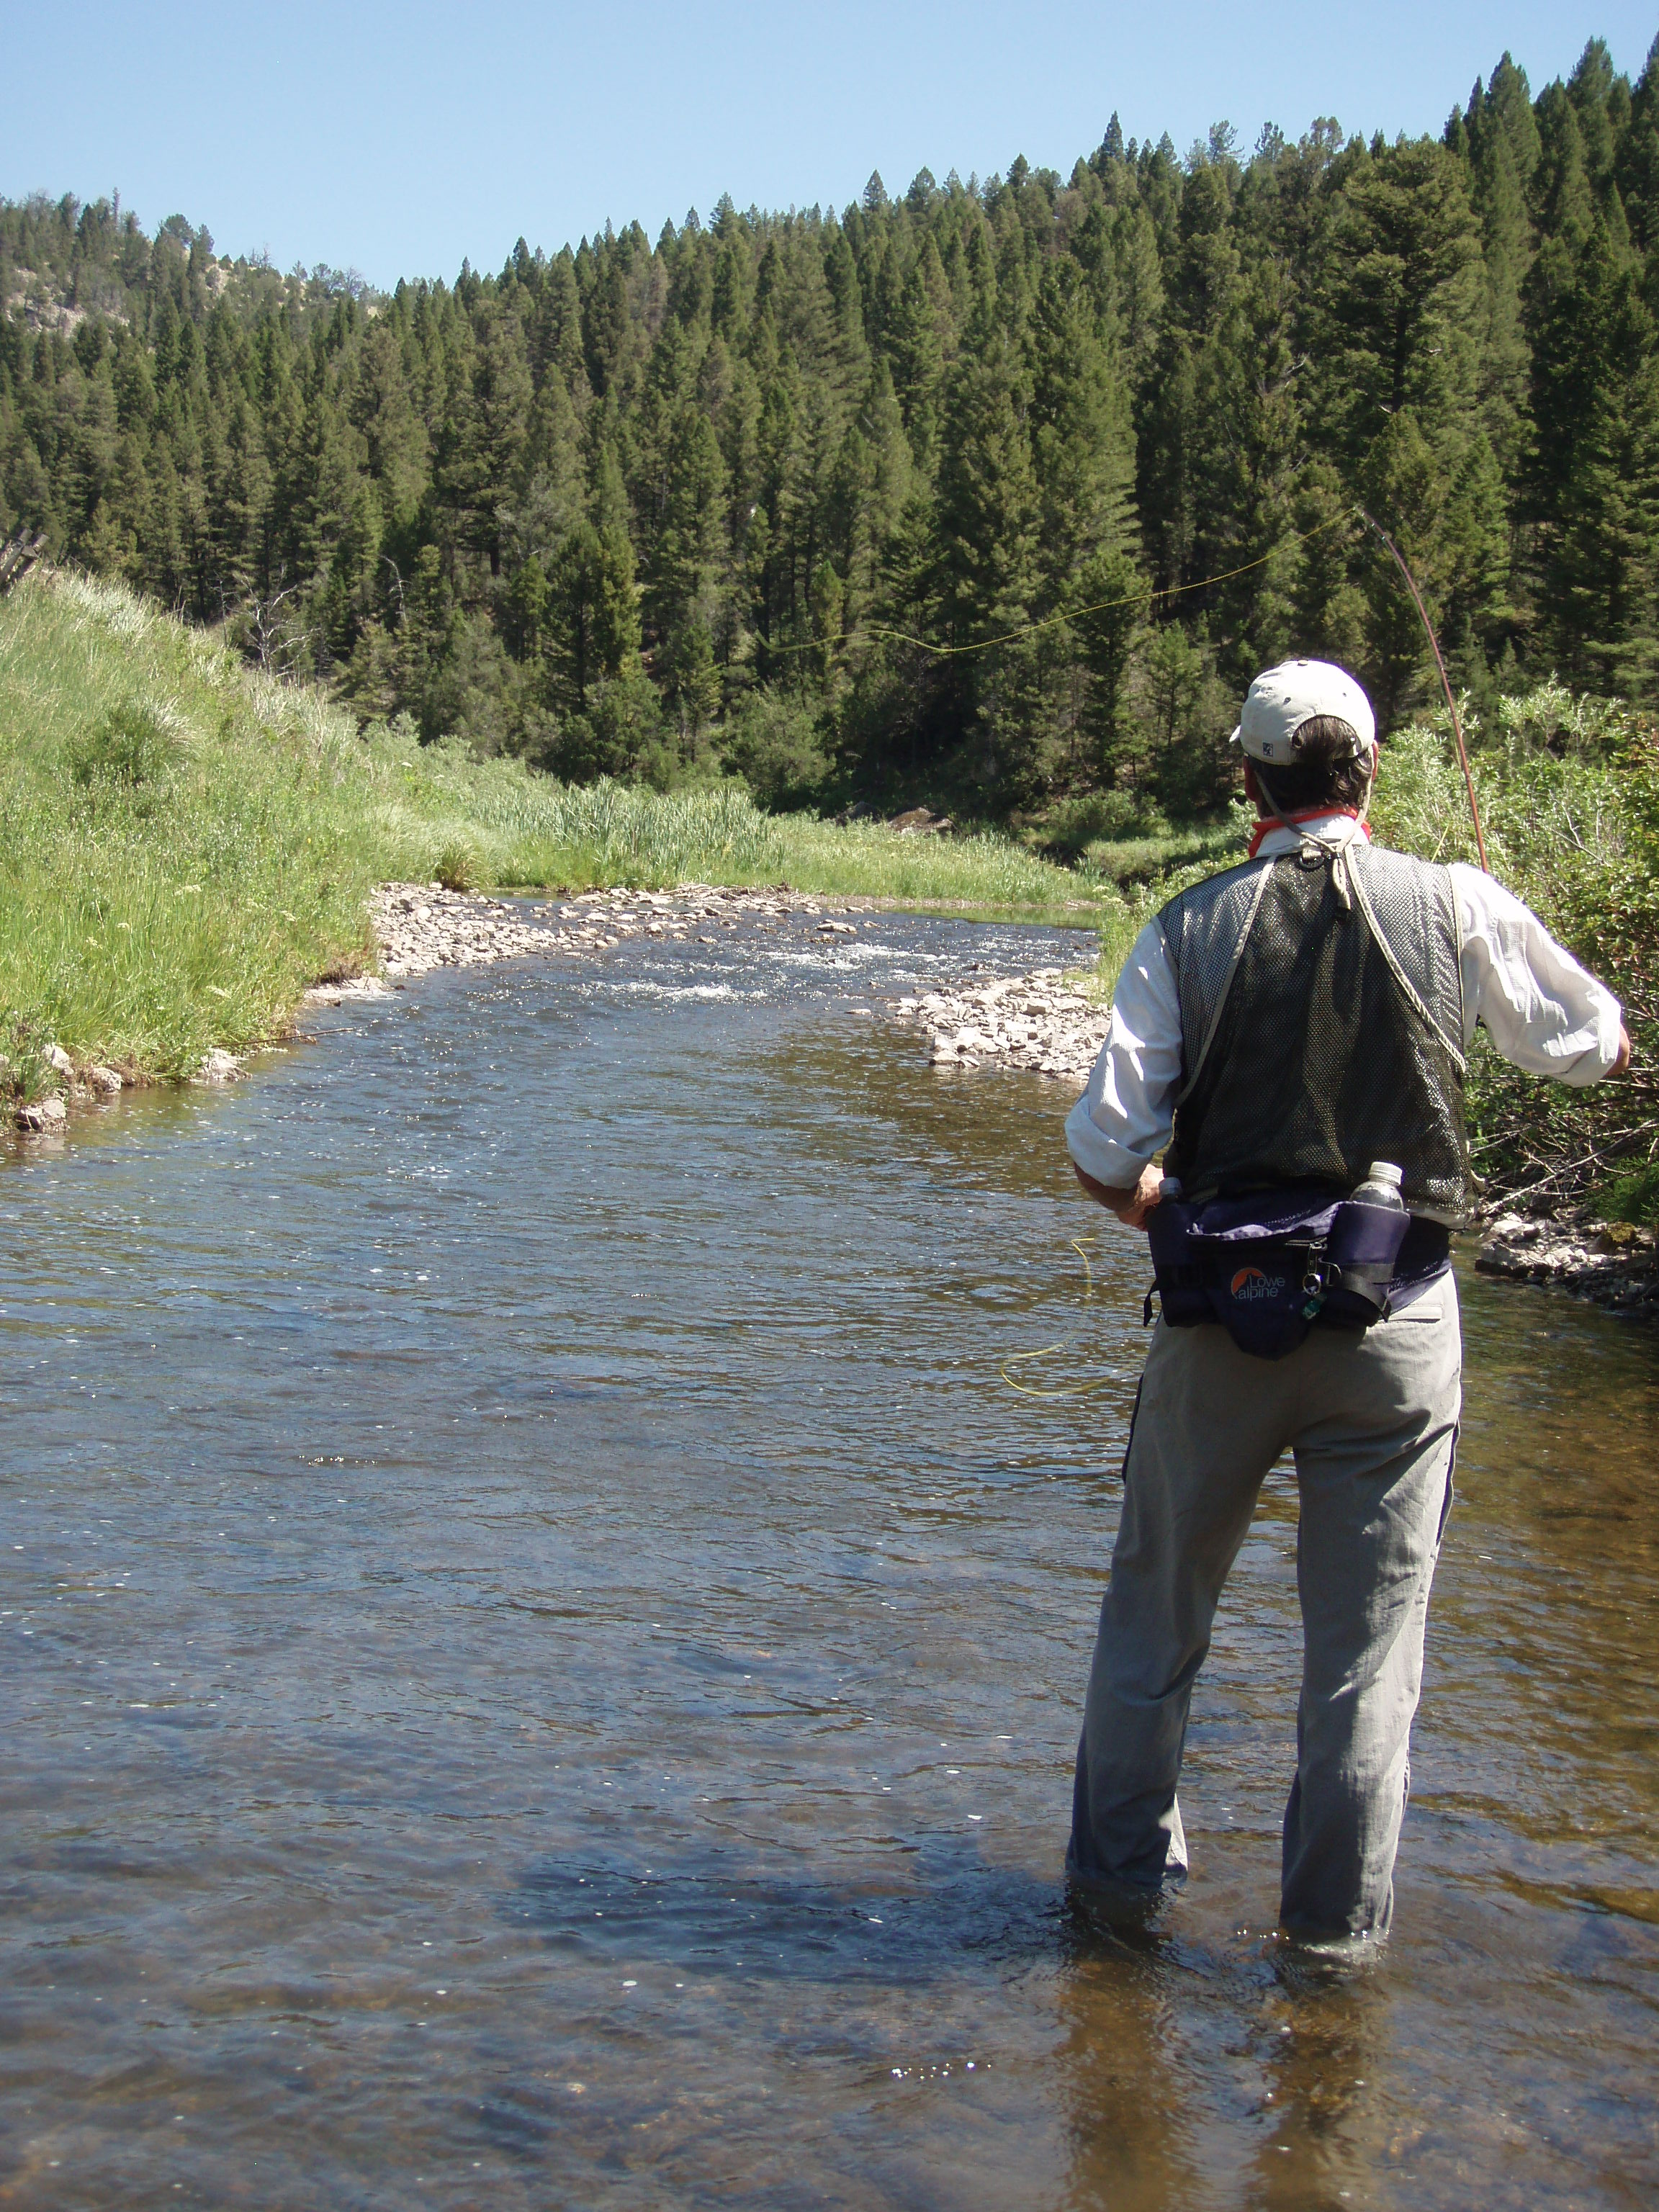 Fly Fishing on Montana Fishing Outfitters private access waters.